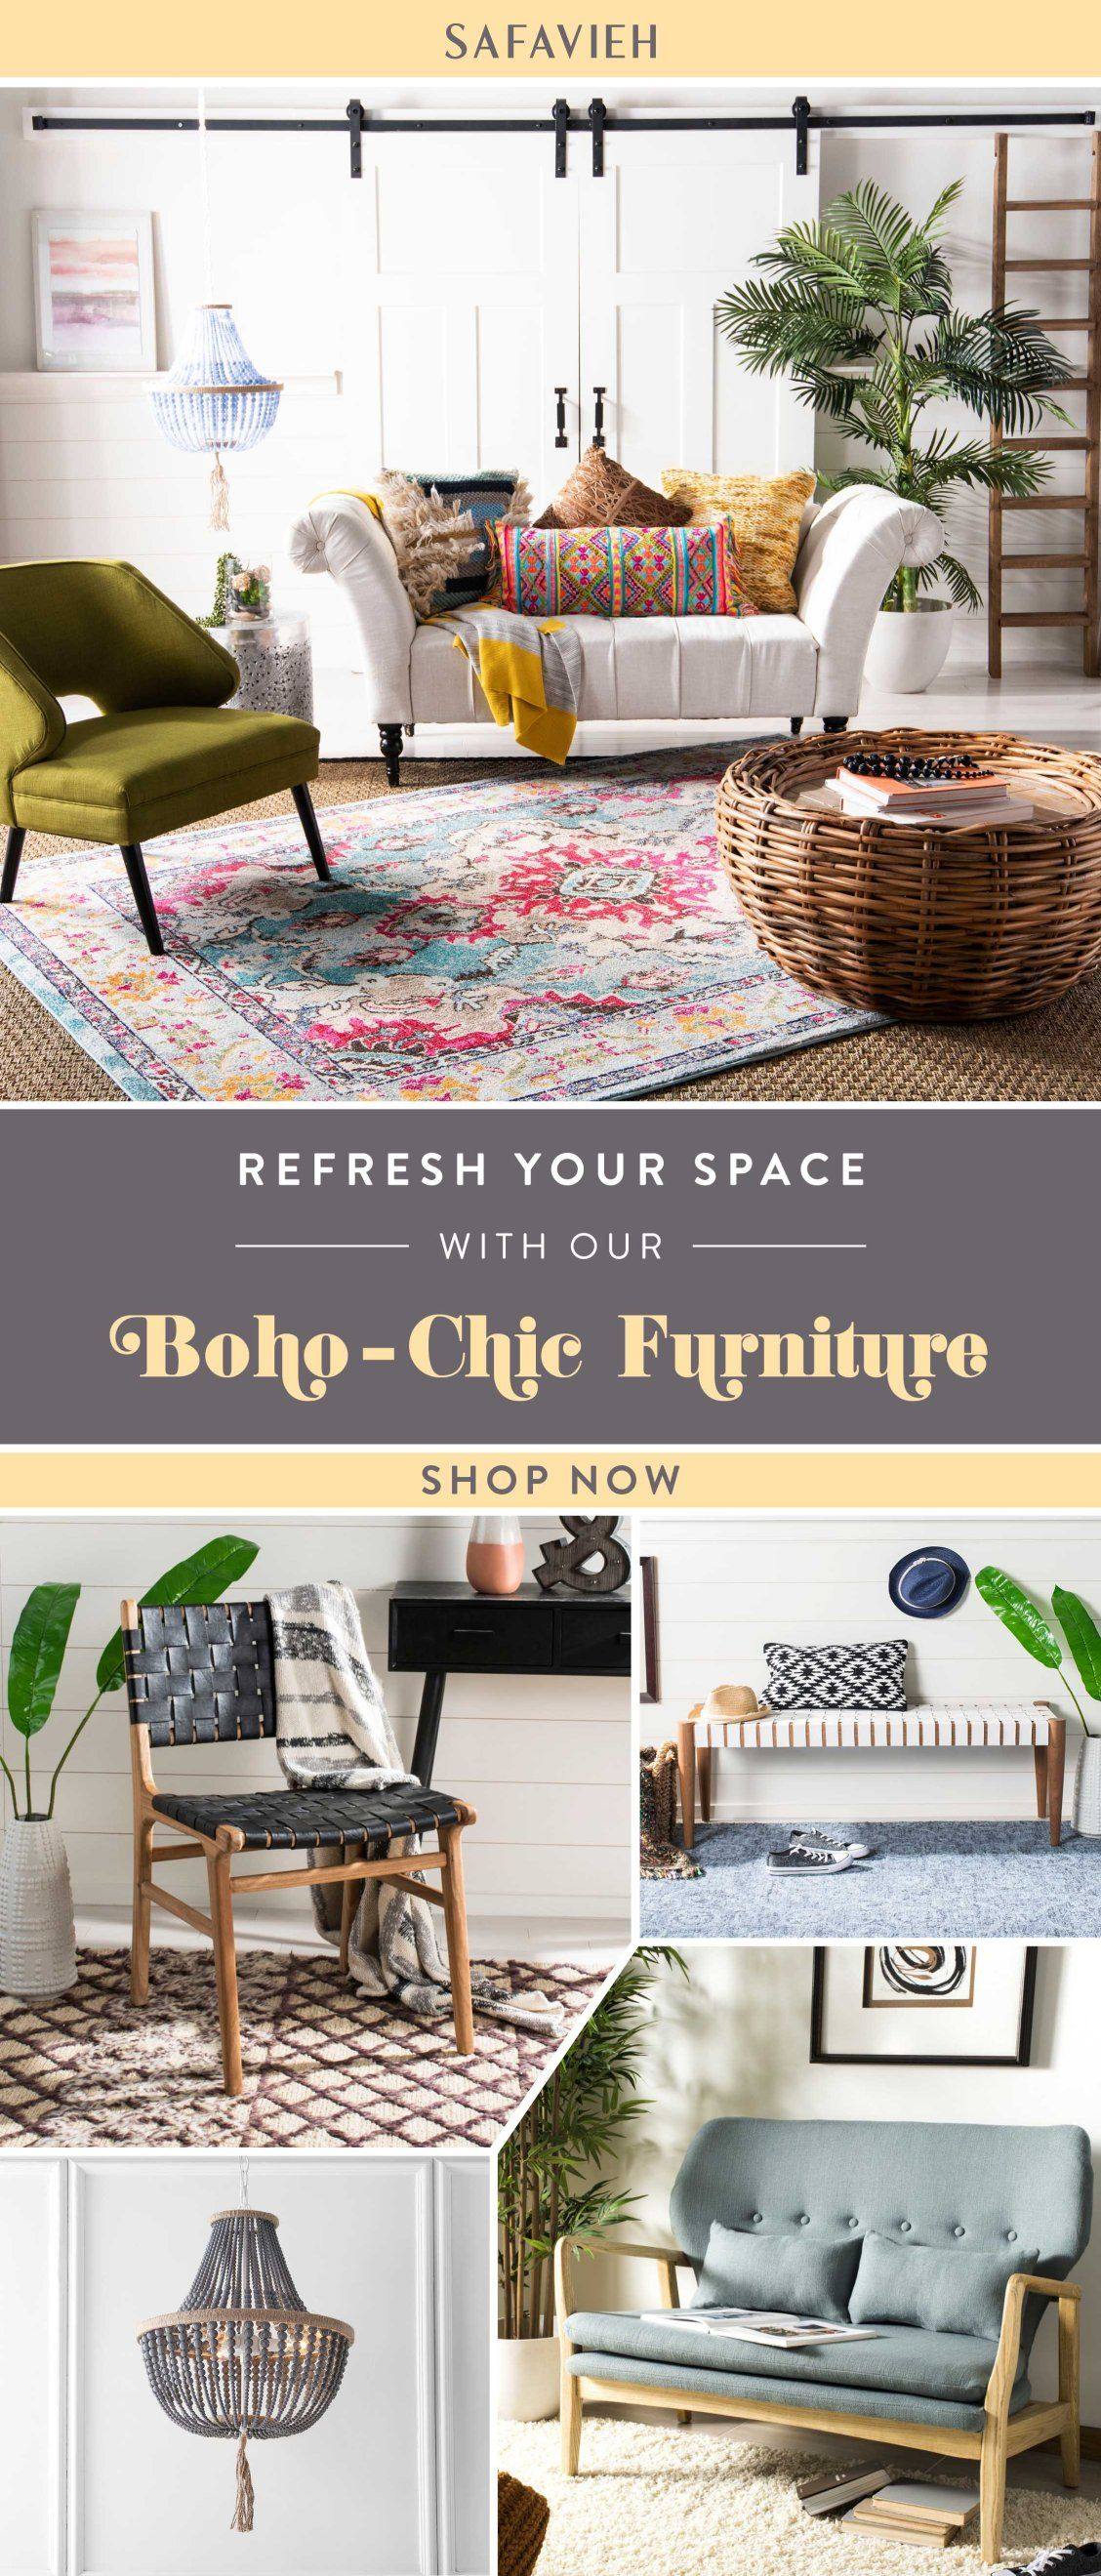 Fantastic Bed Bath Beyond Invites You To Express Your Boho Chic Unemploymentrelief Wooden Chair Designs For Living Room Unemploymentrelieforg